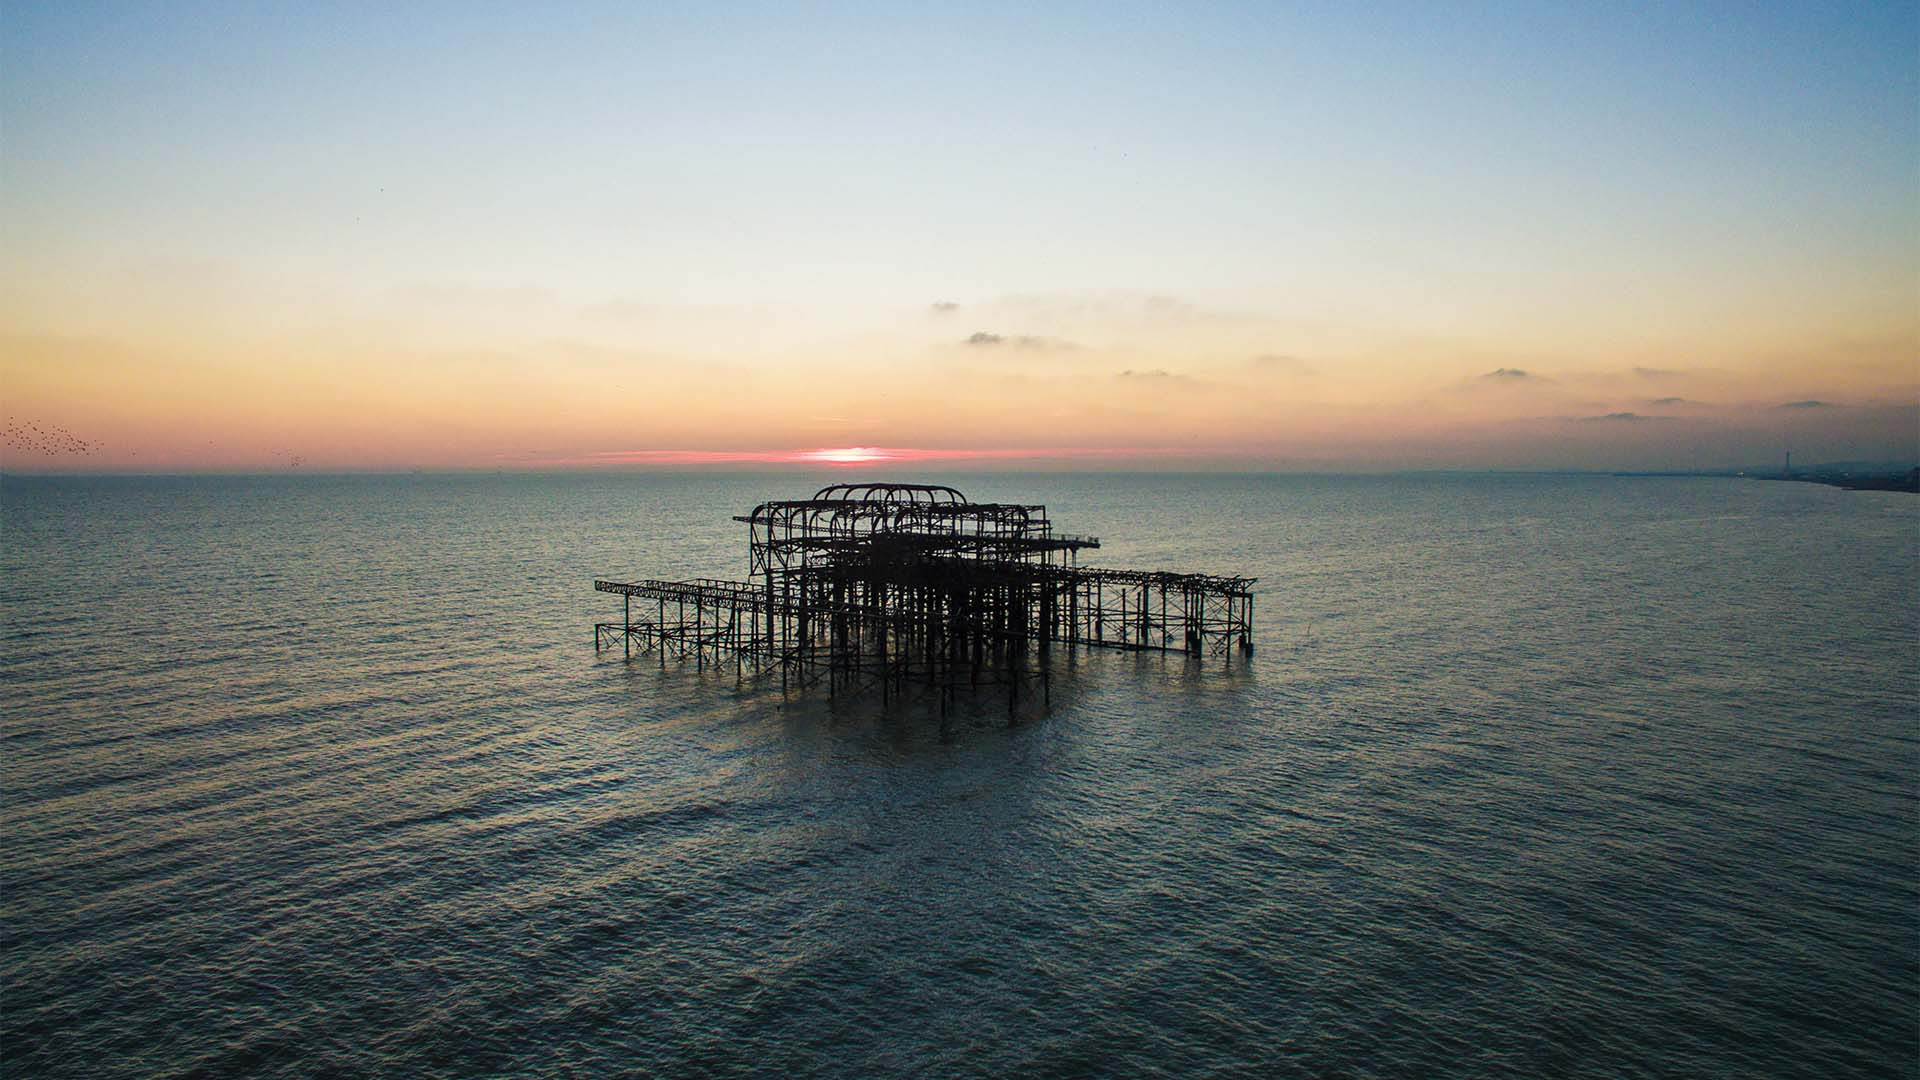 West Pier Brighton drone photo from Drone Photography Masterclass